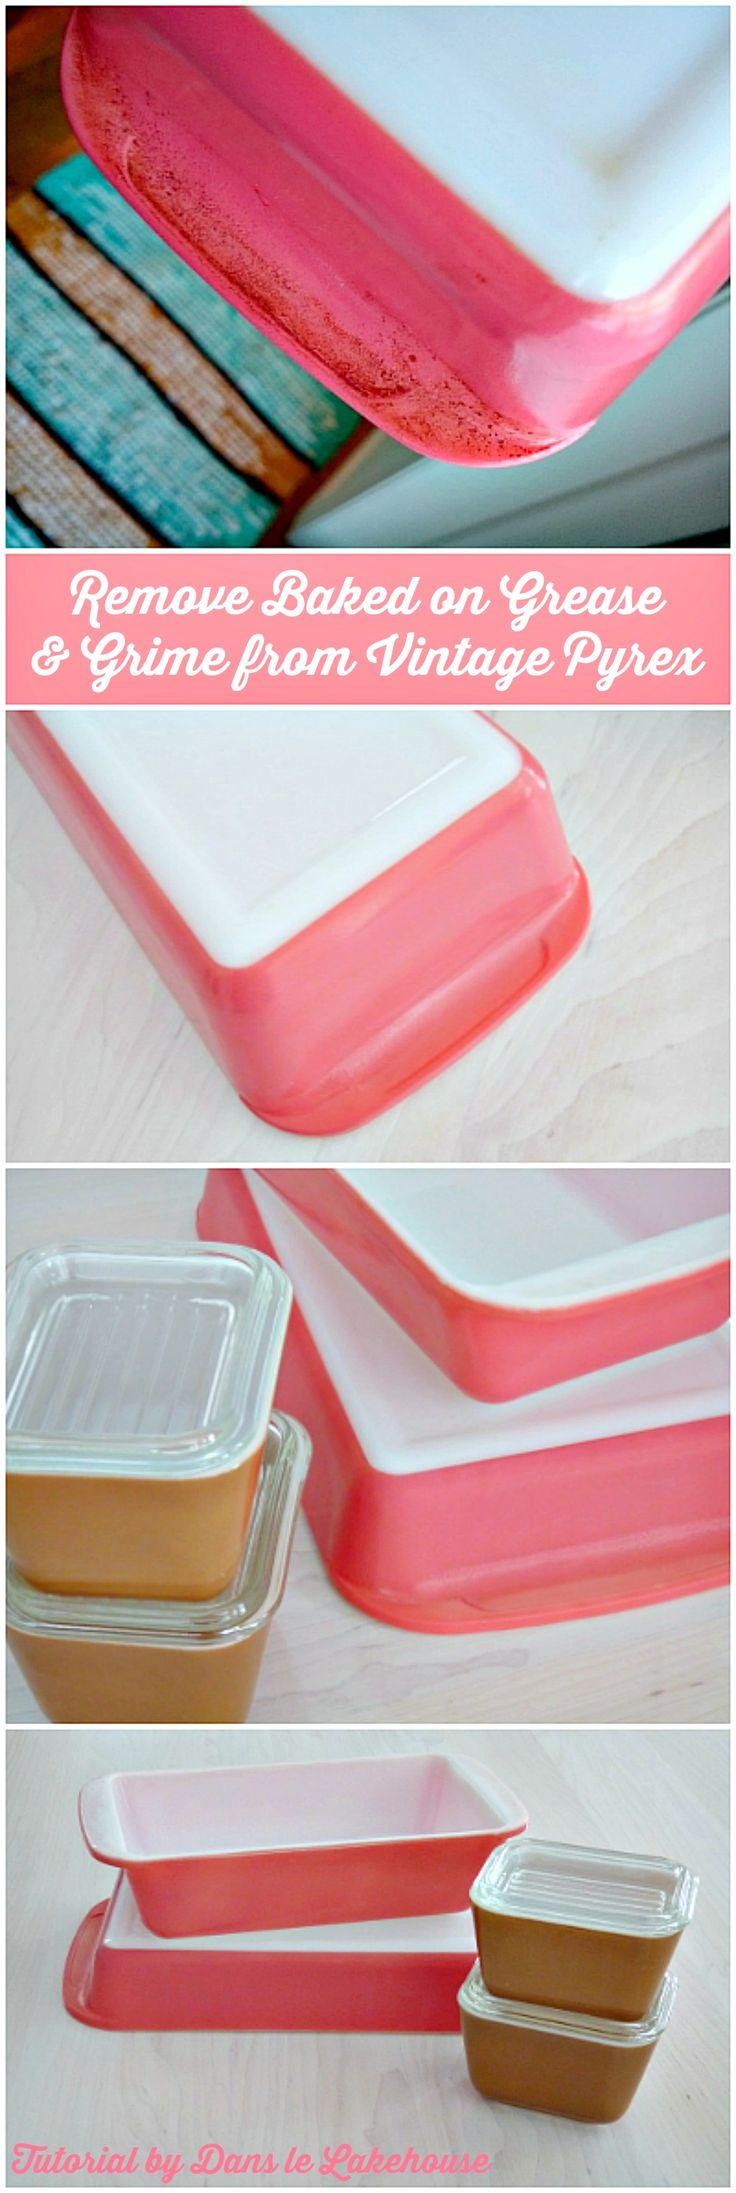 How to Clean Baked on, Burnt on Grease and Grime from Vintage Pyrex Bake Ware                                                                                                                                                      More